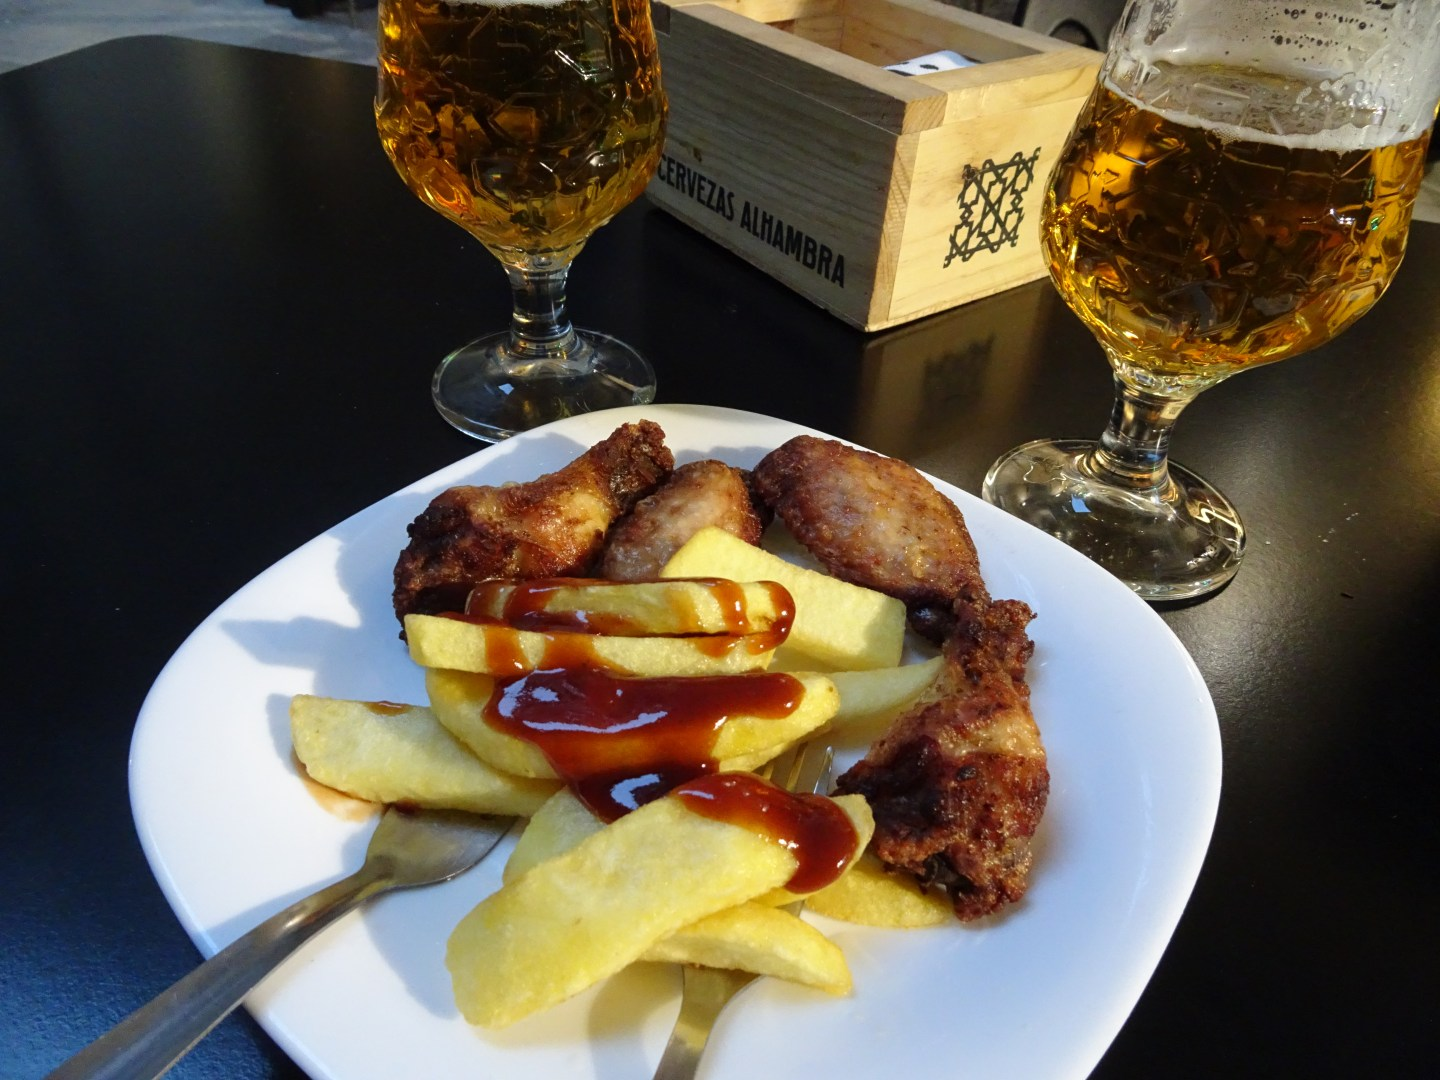 Tapas is given for free when you buy drinks in Granada, Spain